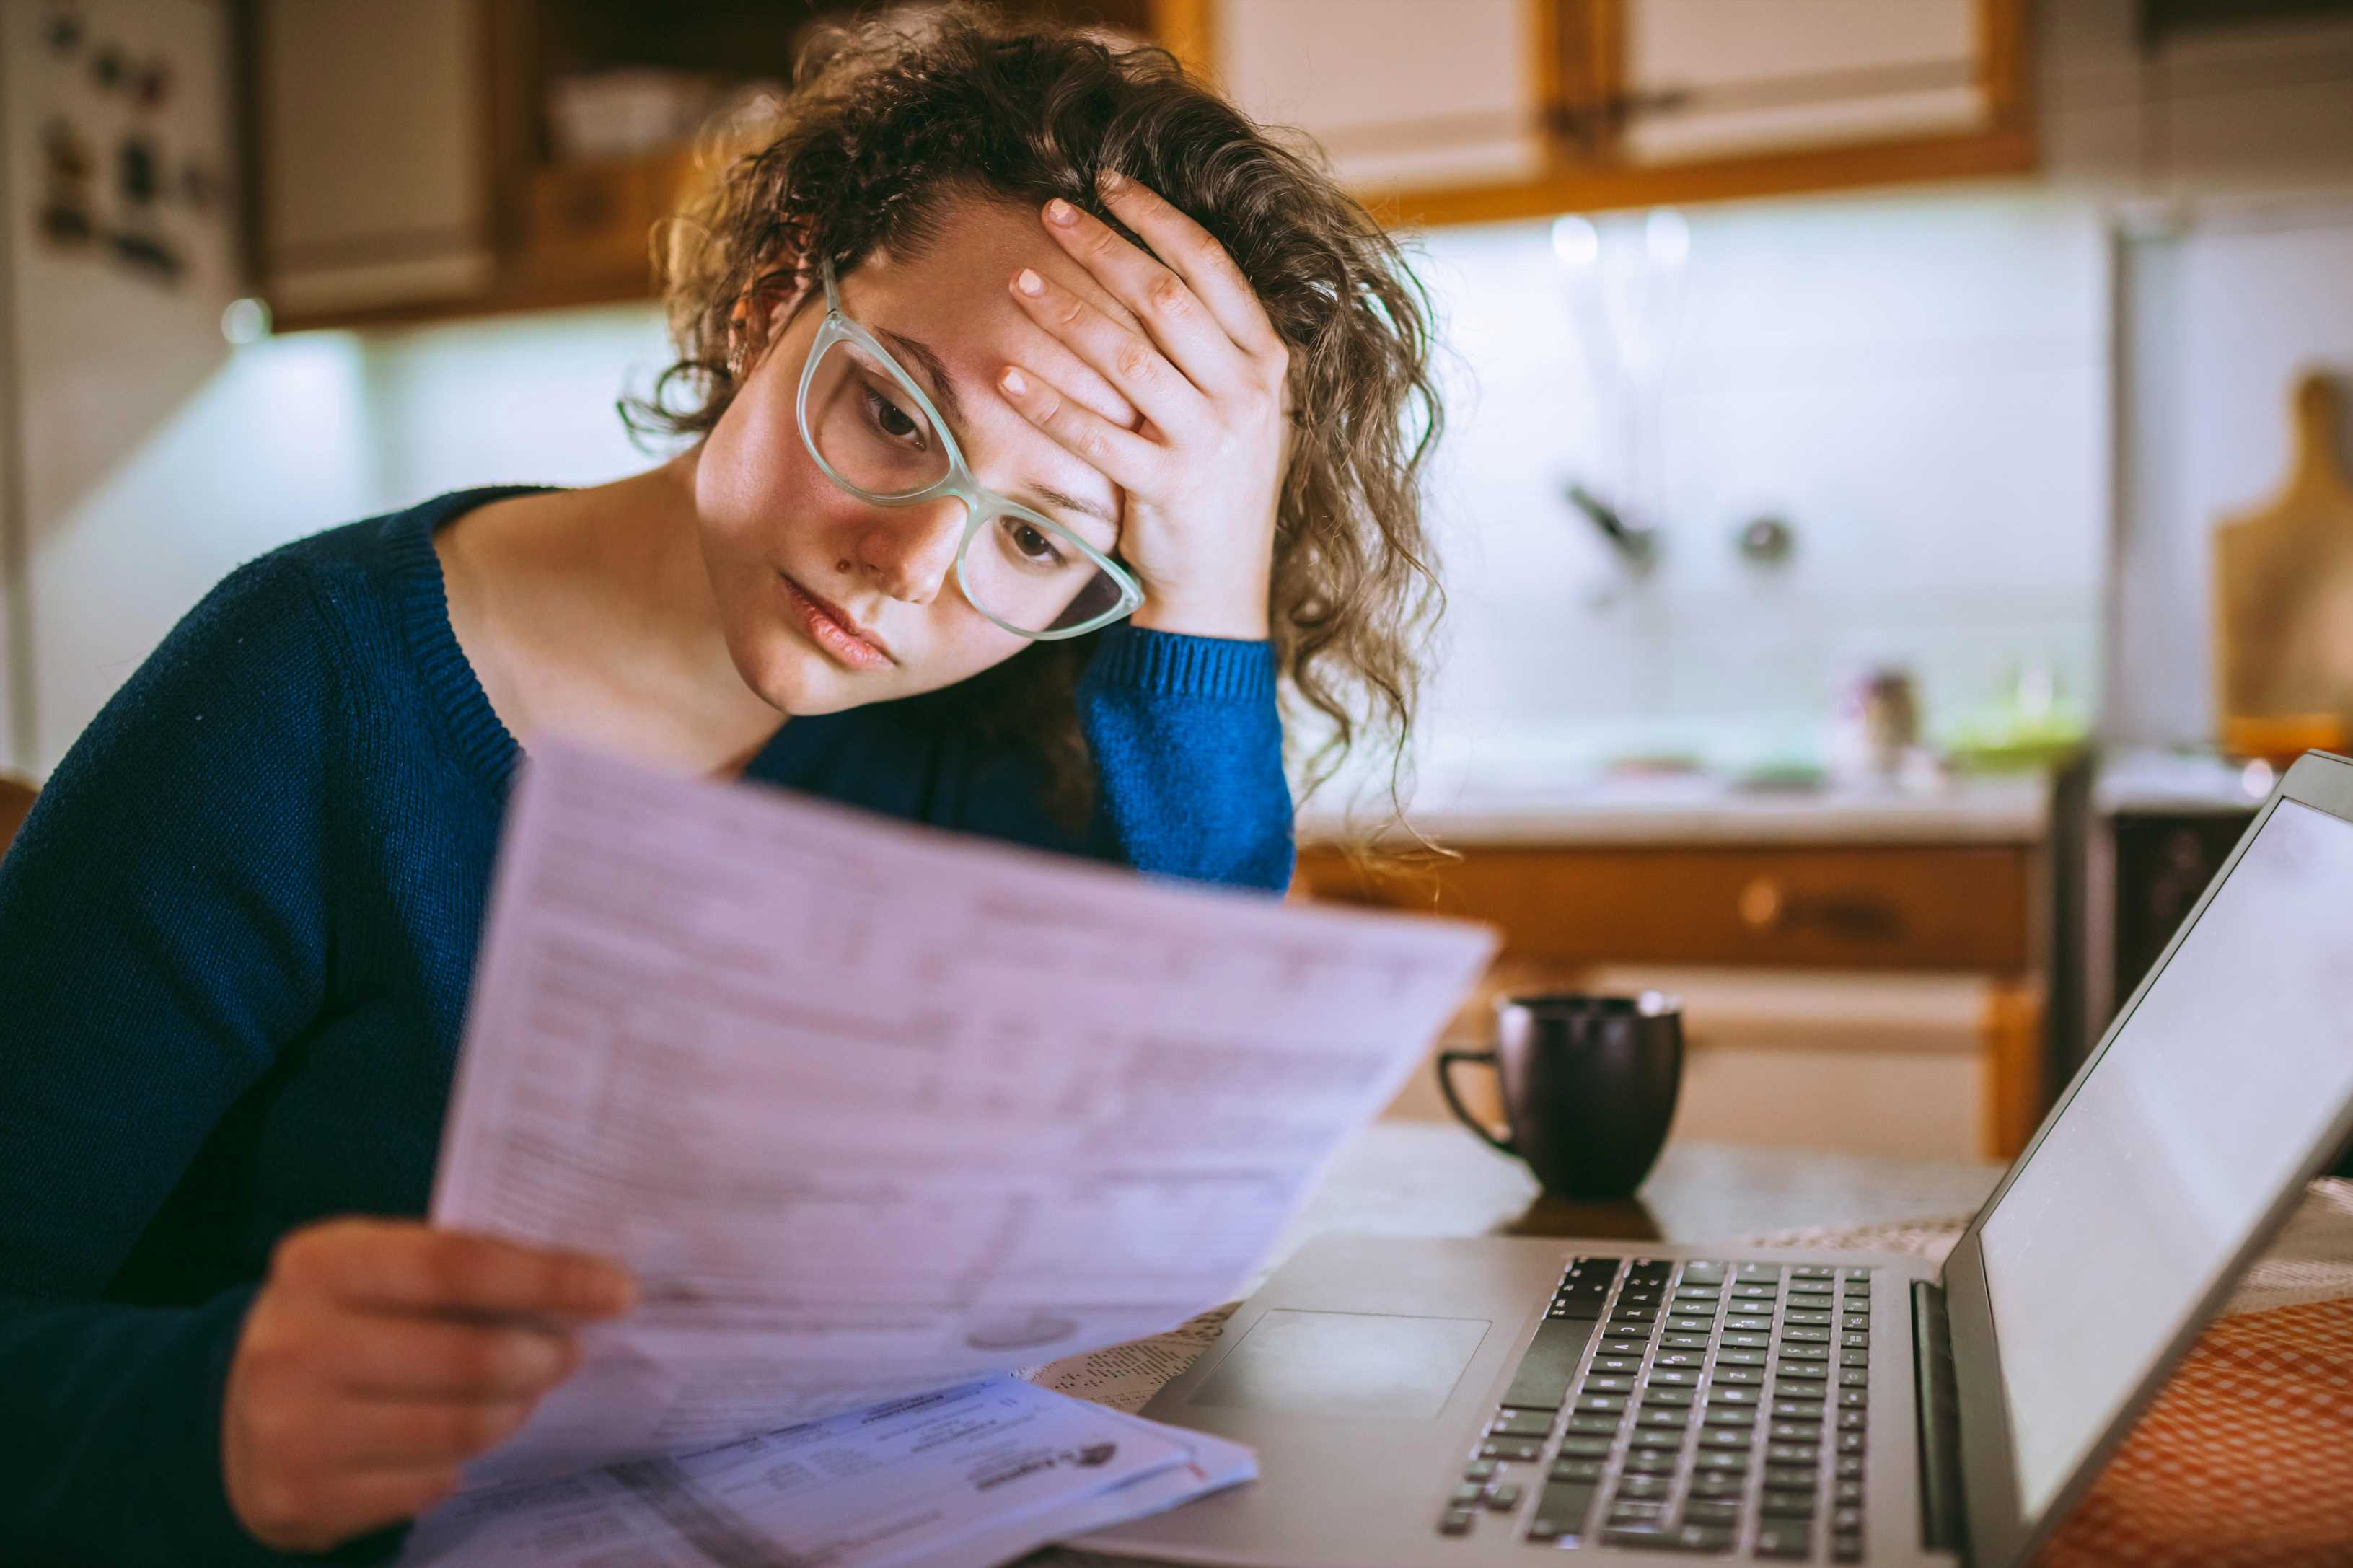 Universal Credit problems – how to get help if your payments are stopped or reduced